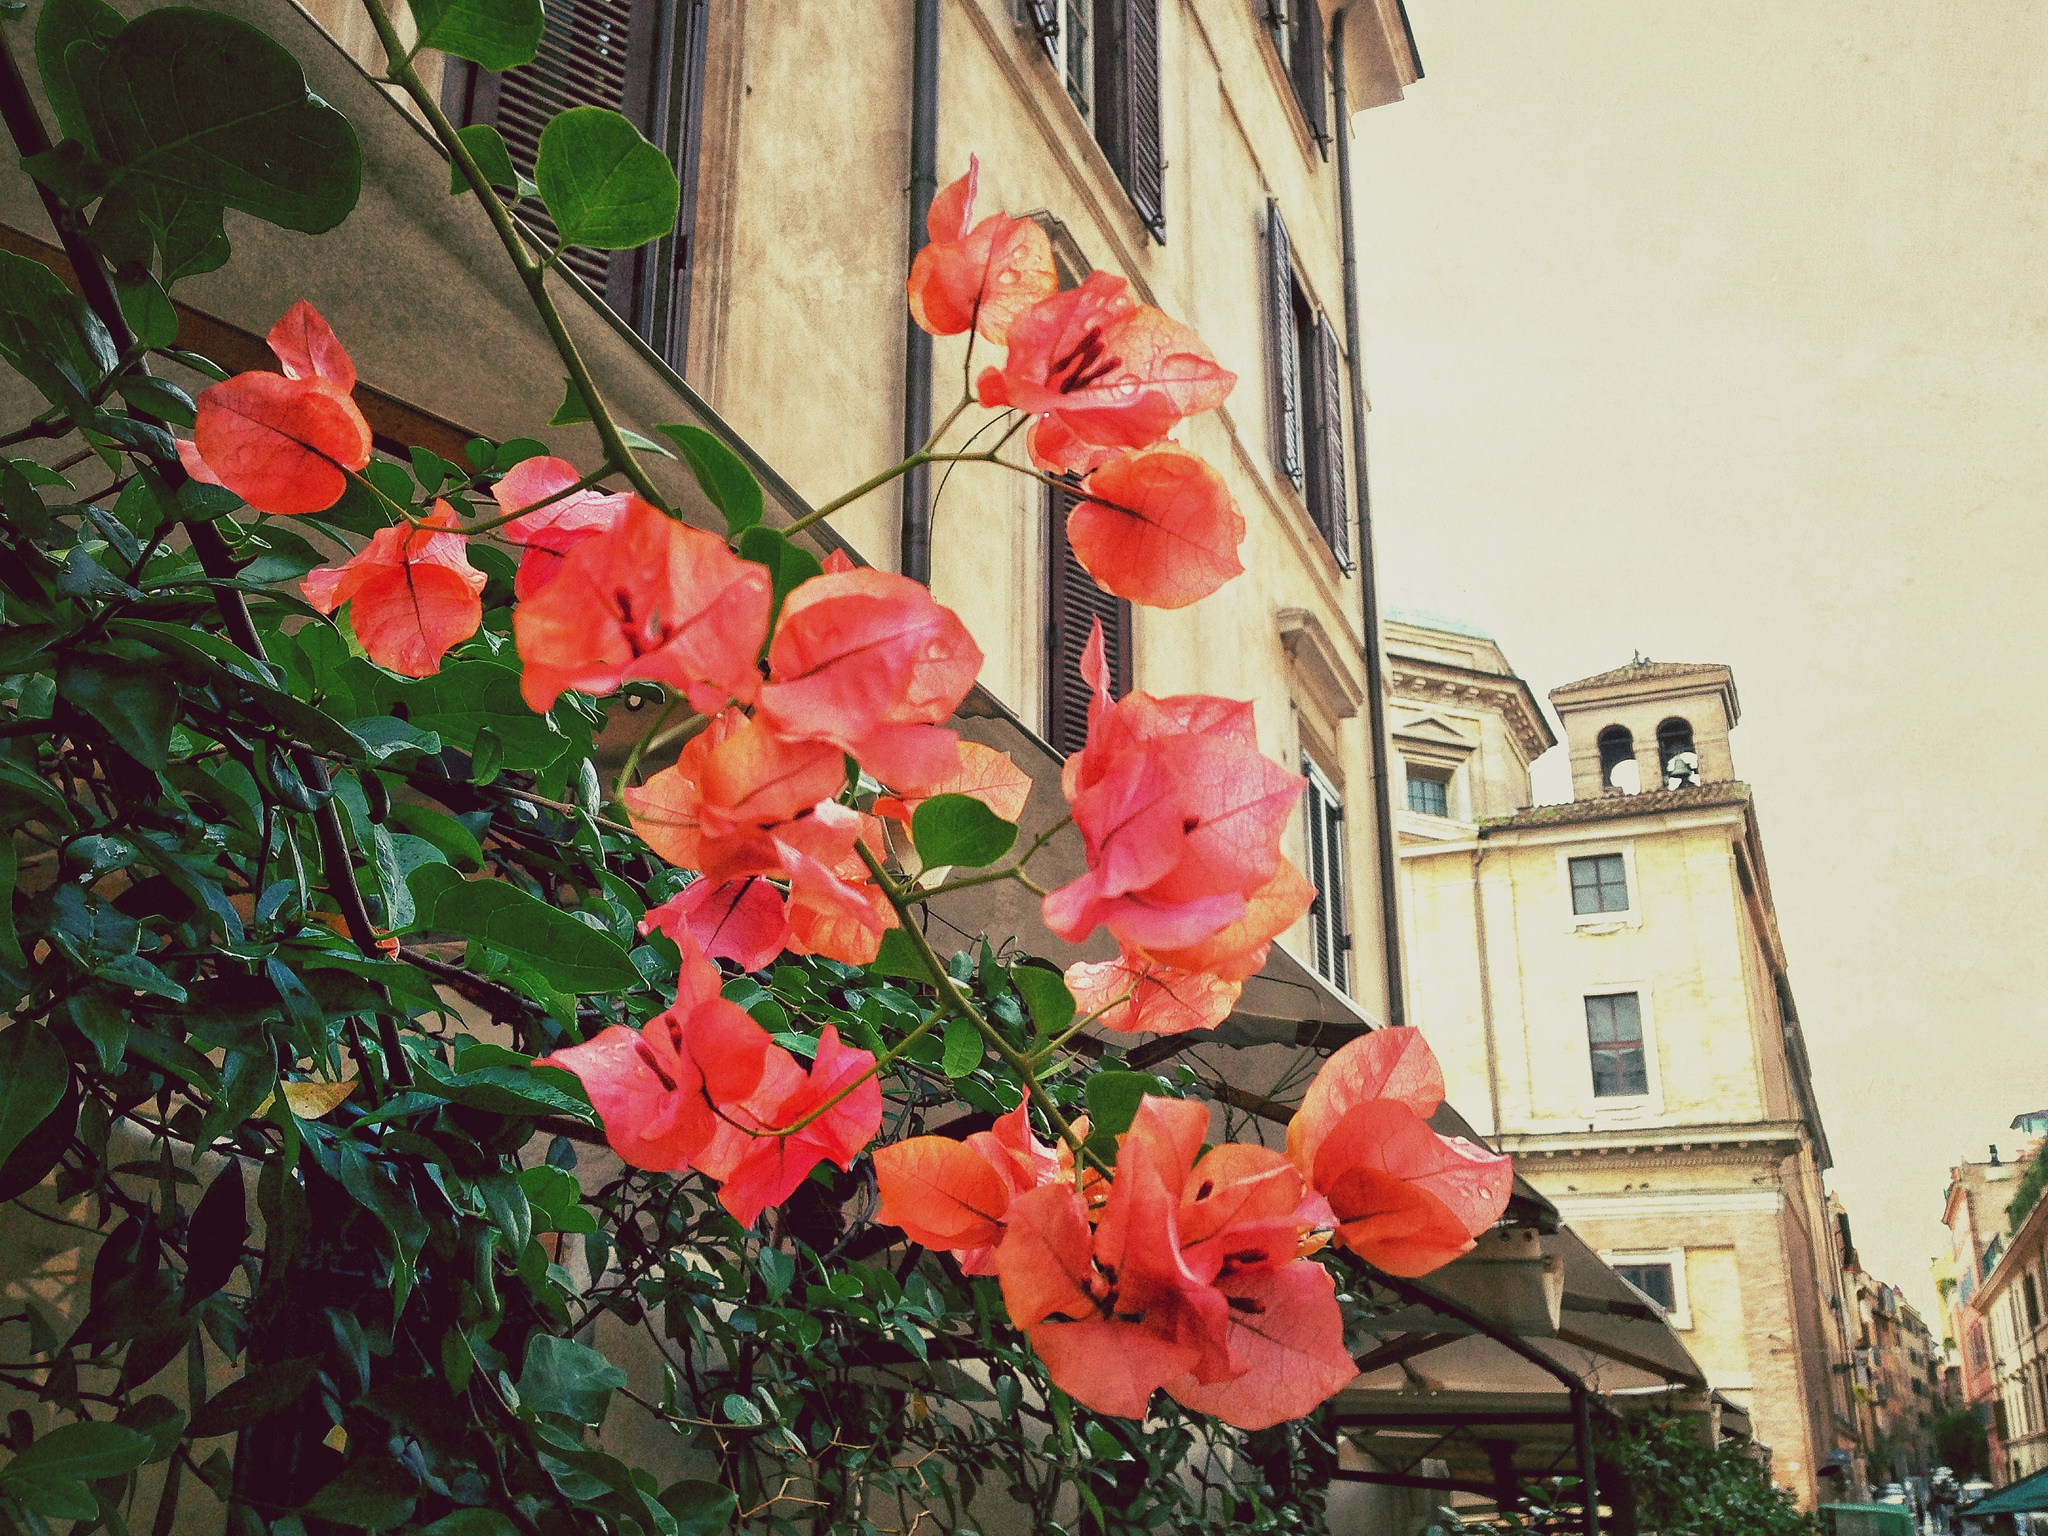 Flowers in Rione Monti Rome